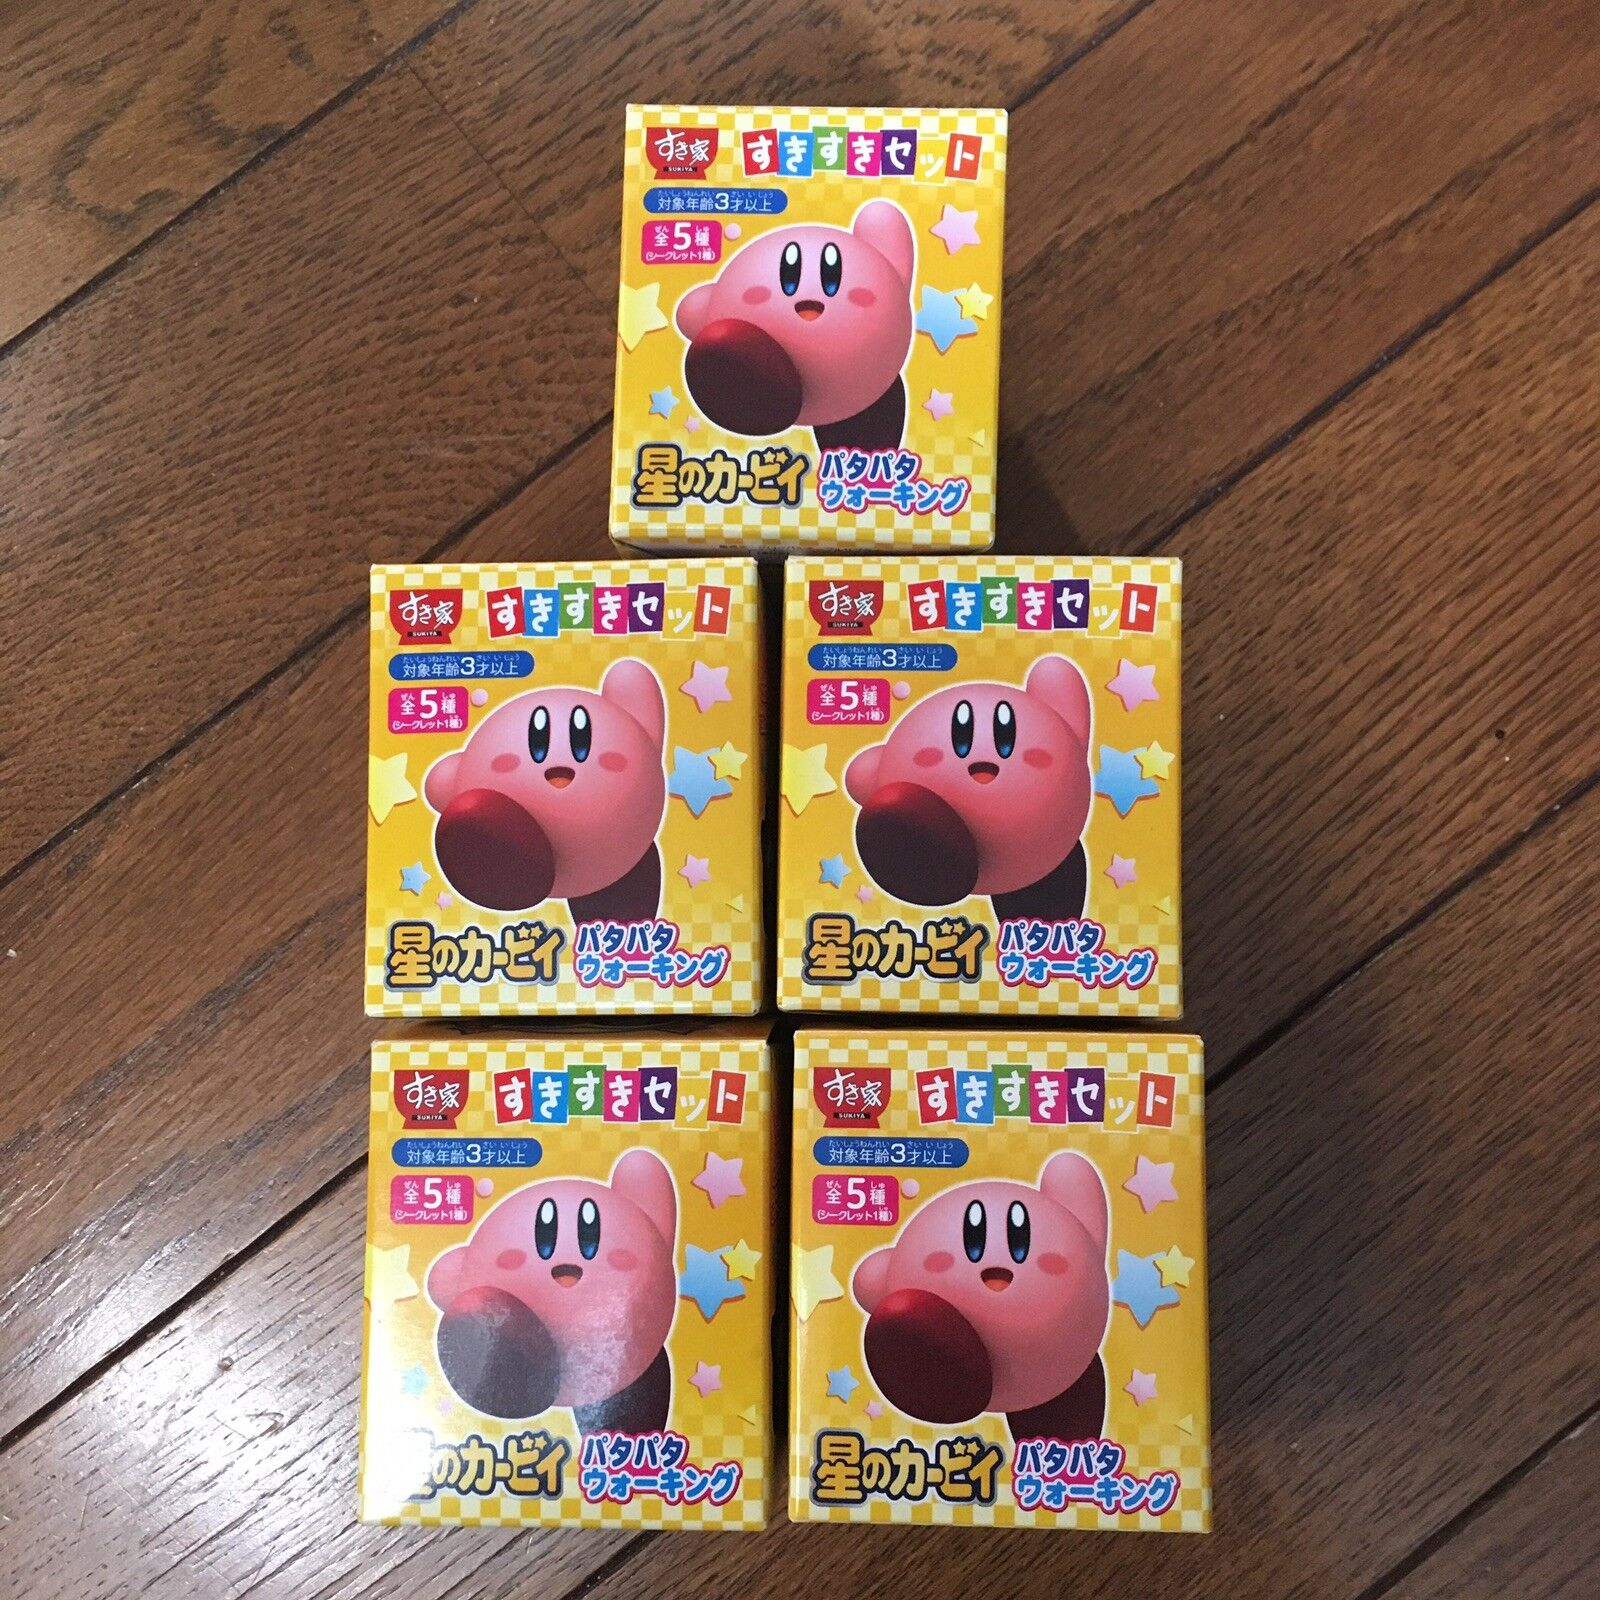 Kirby's adventure Hoshi no Kirby patapata walking toy 5 figures complete set